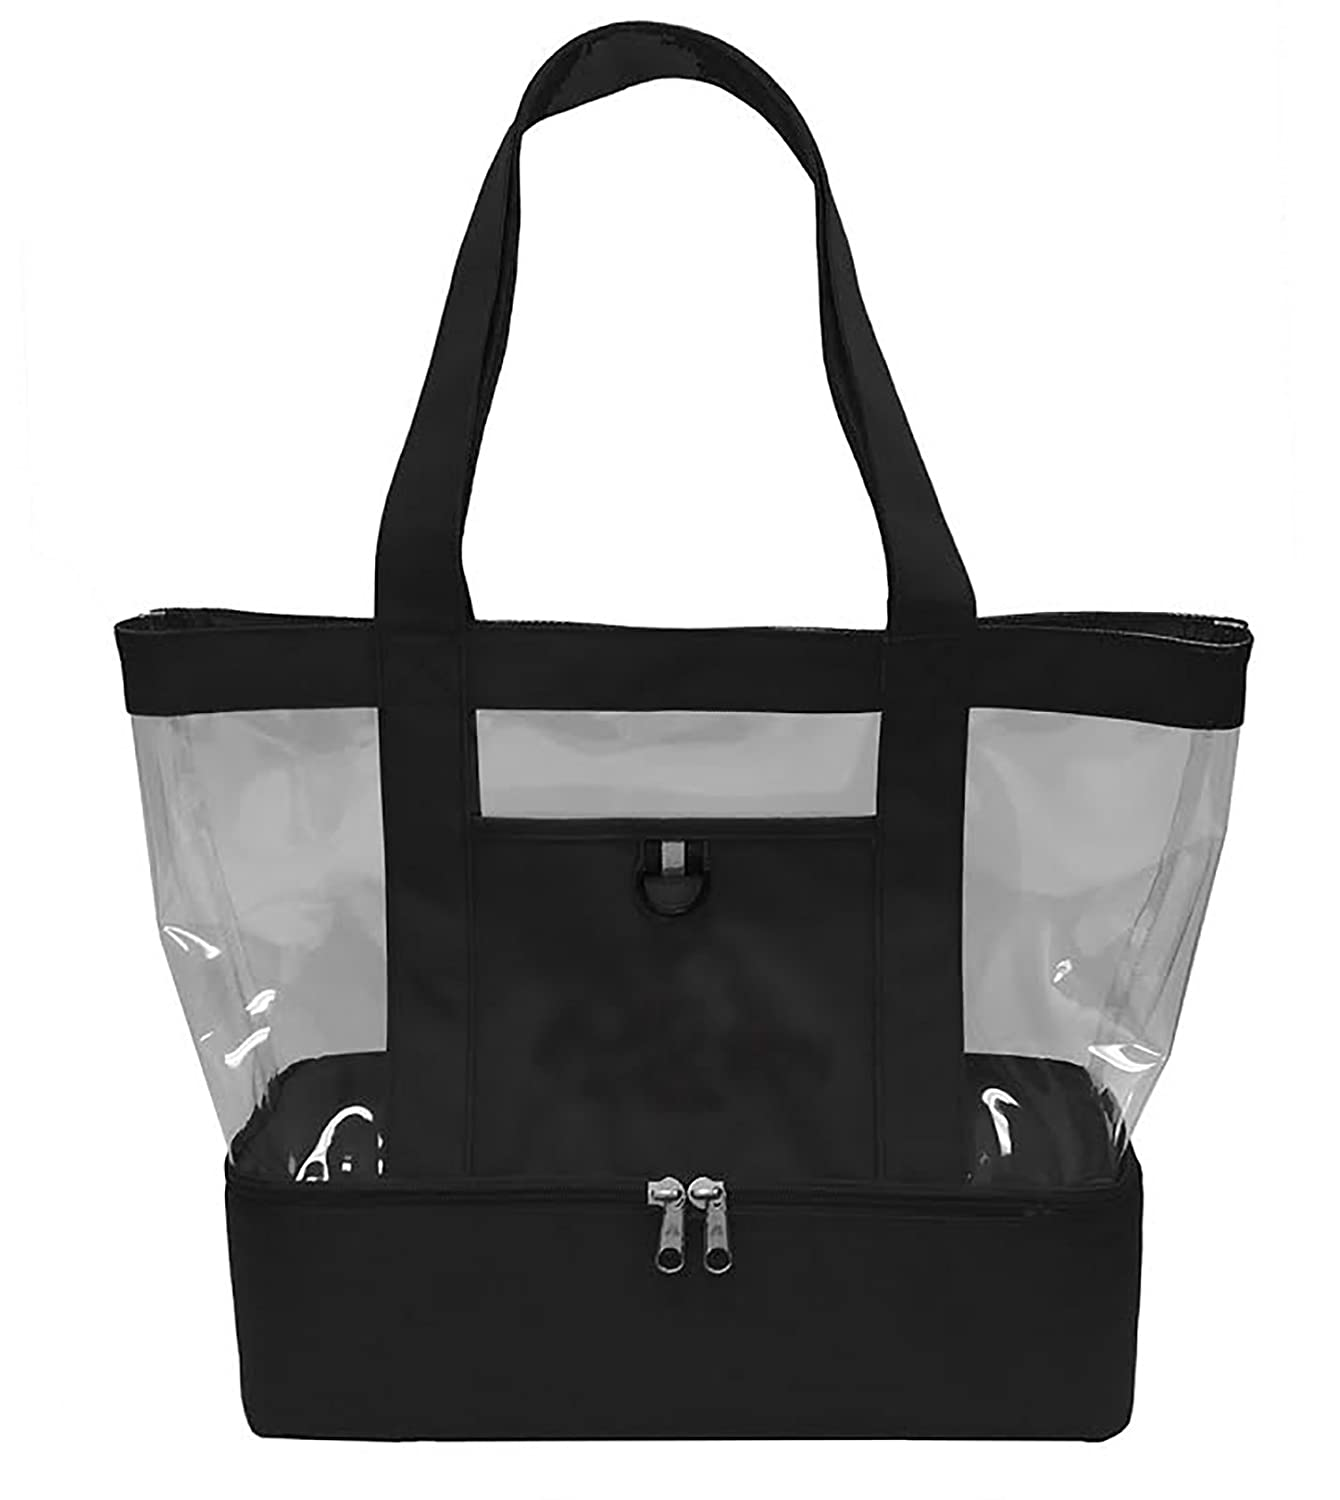 Gameday Stadium ClearビーチTote Bag with Cooler下部 B01H5U3LA8 Personalized|ブラック ブラック Personalized